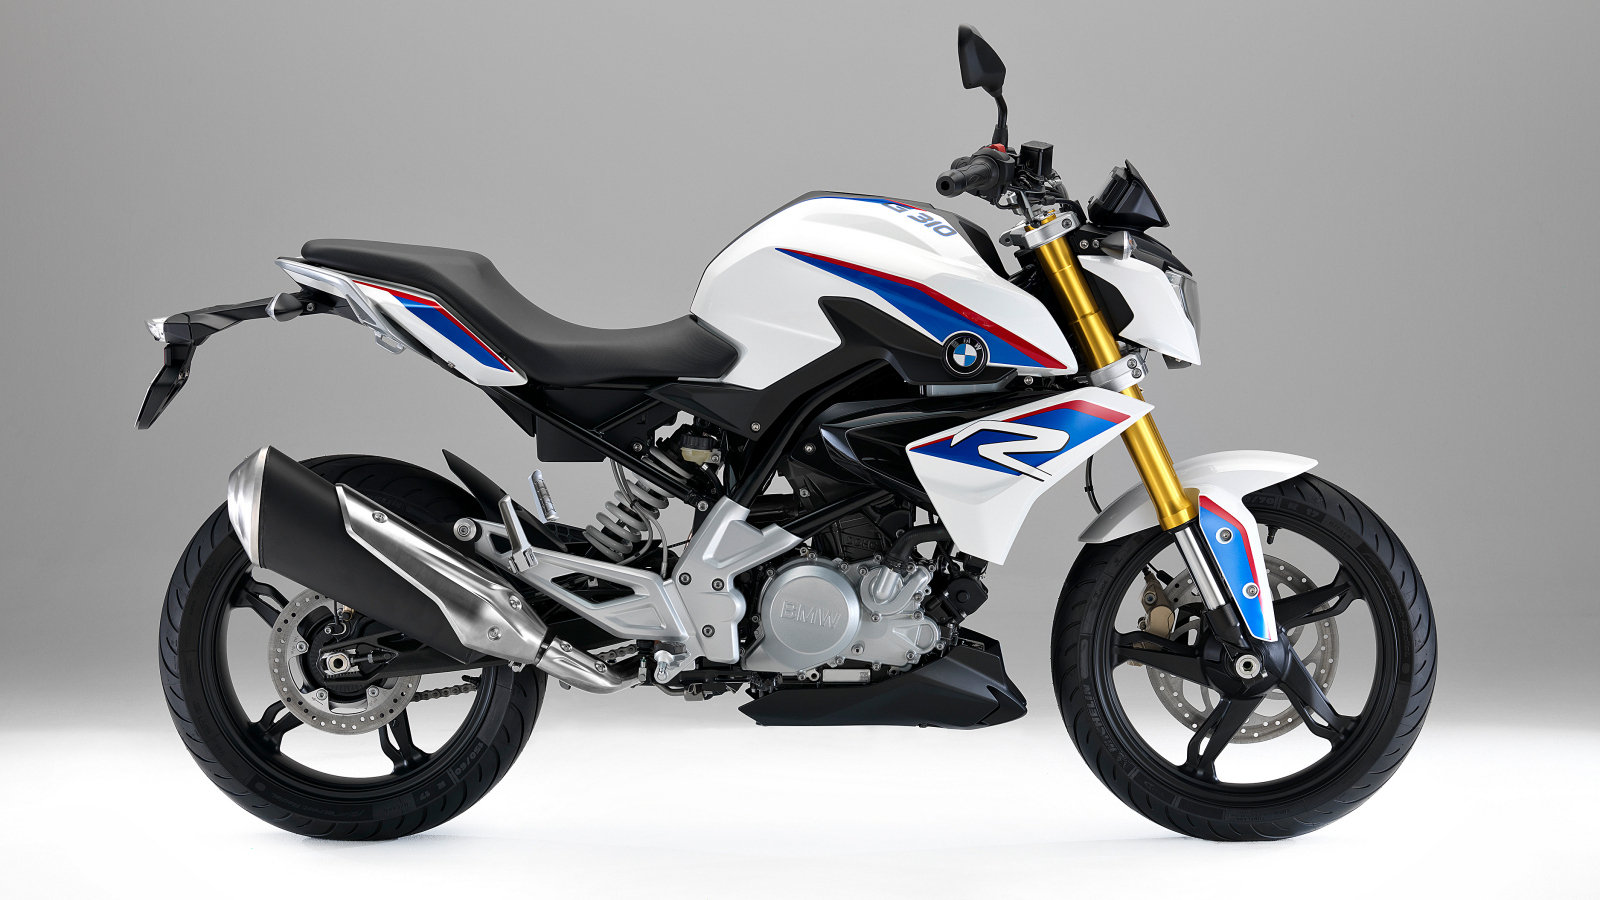 2016 bmw g 310 r picture 684734 motorcycle review top speed. Black Bedroom Furniture Sets. Home Design Ideas